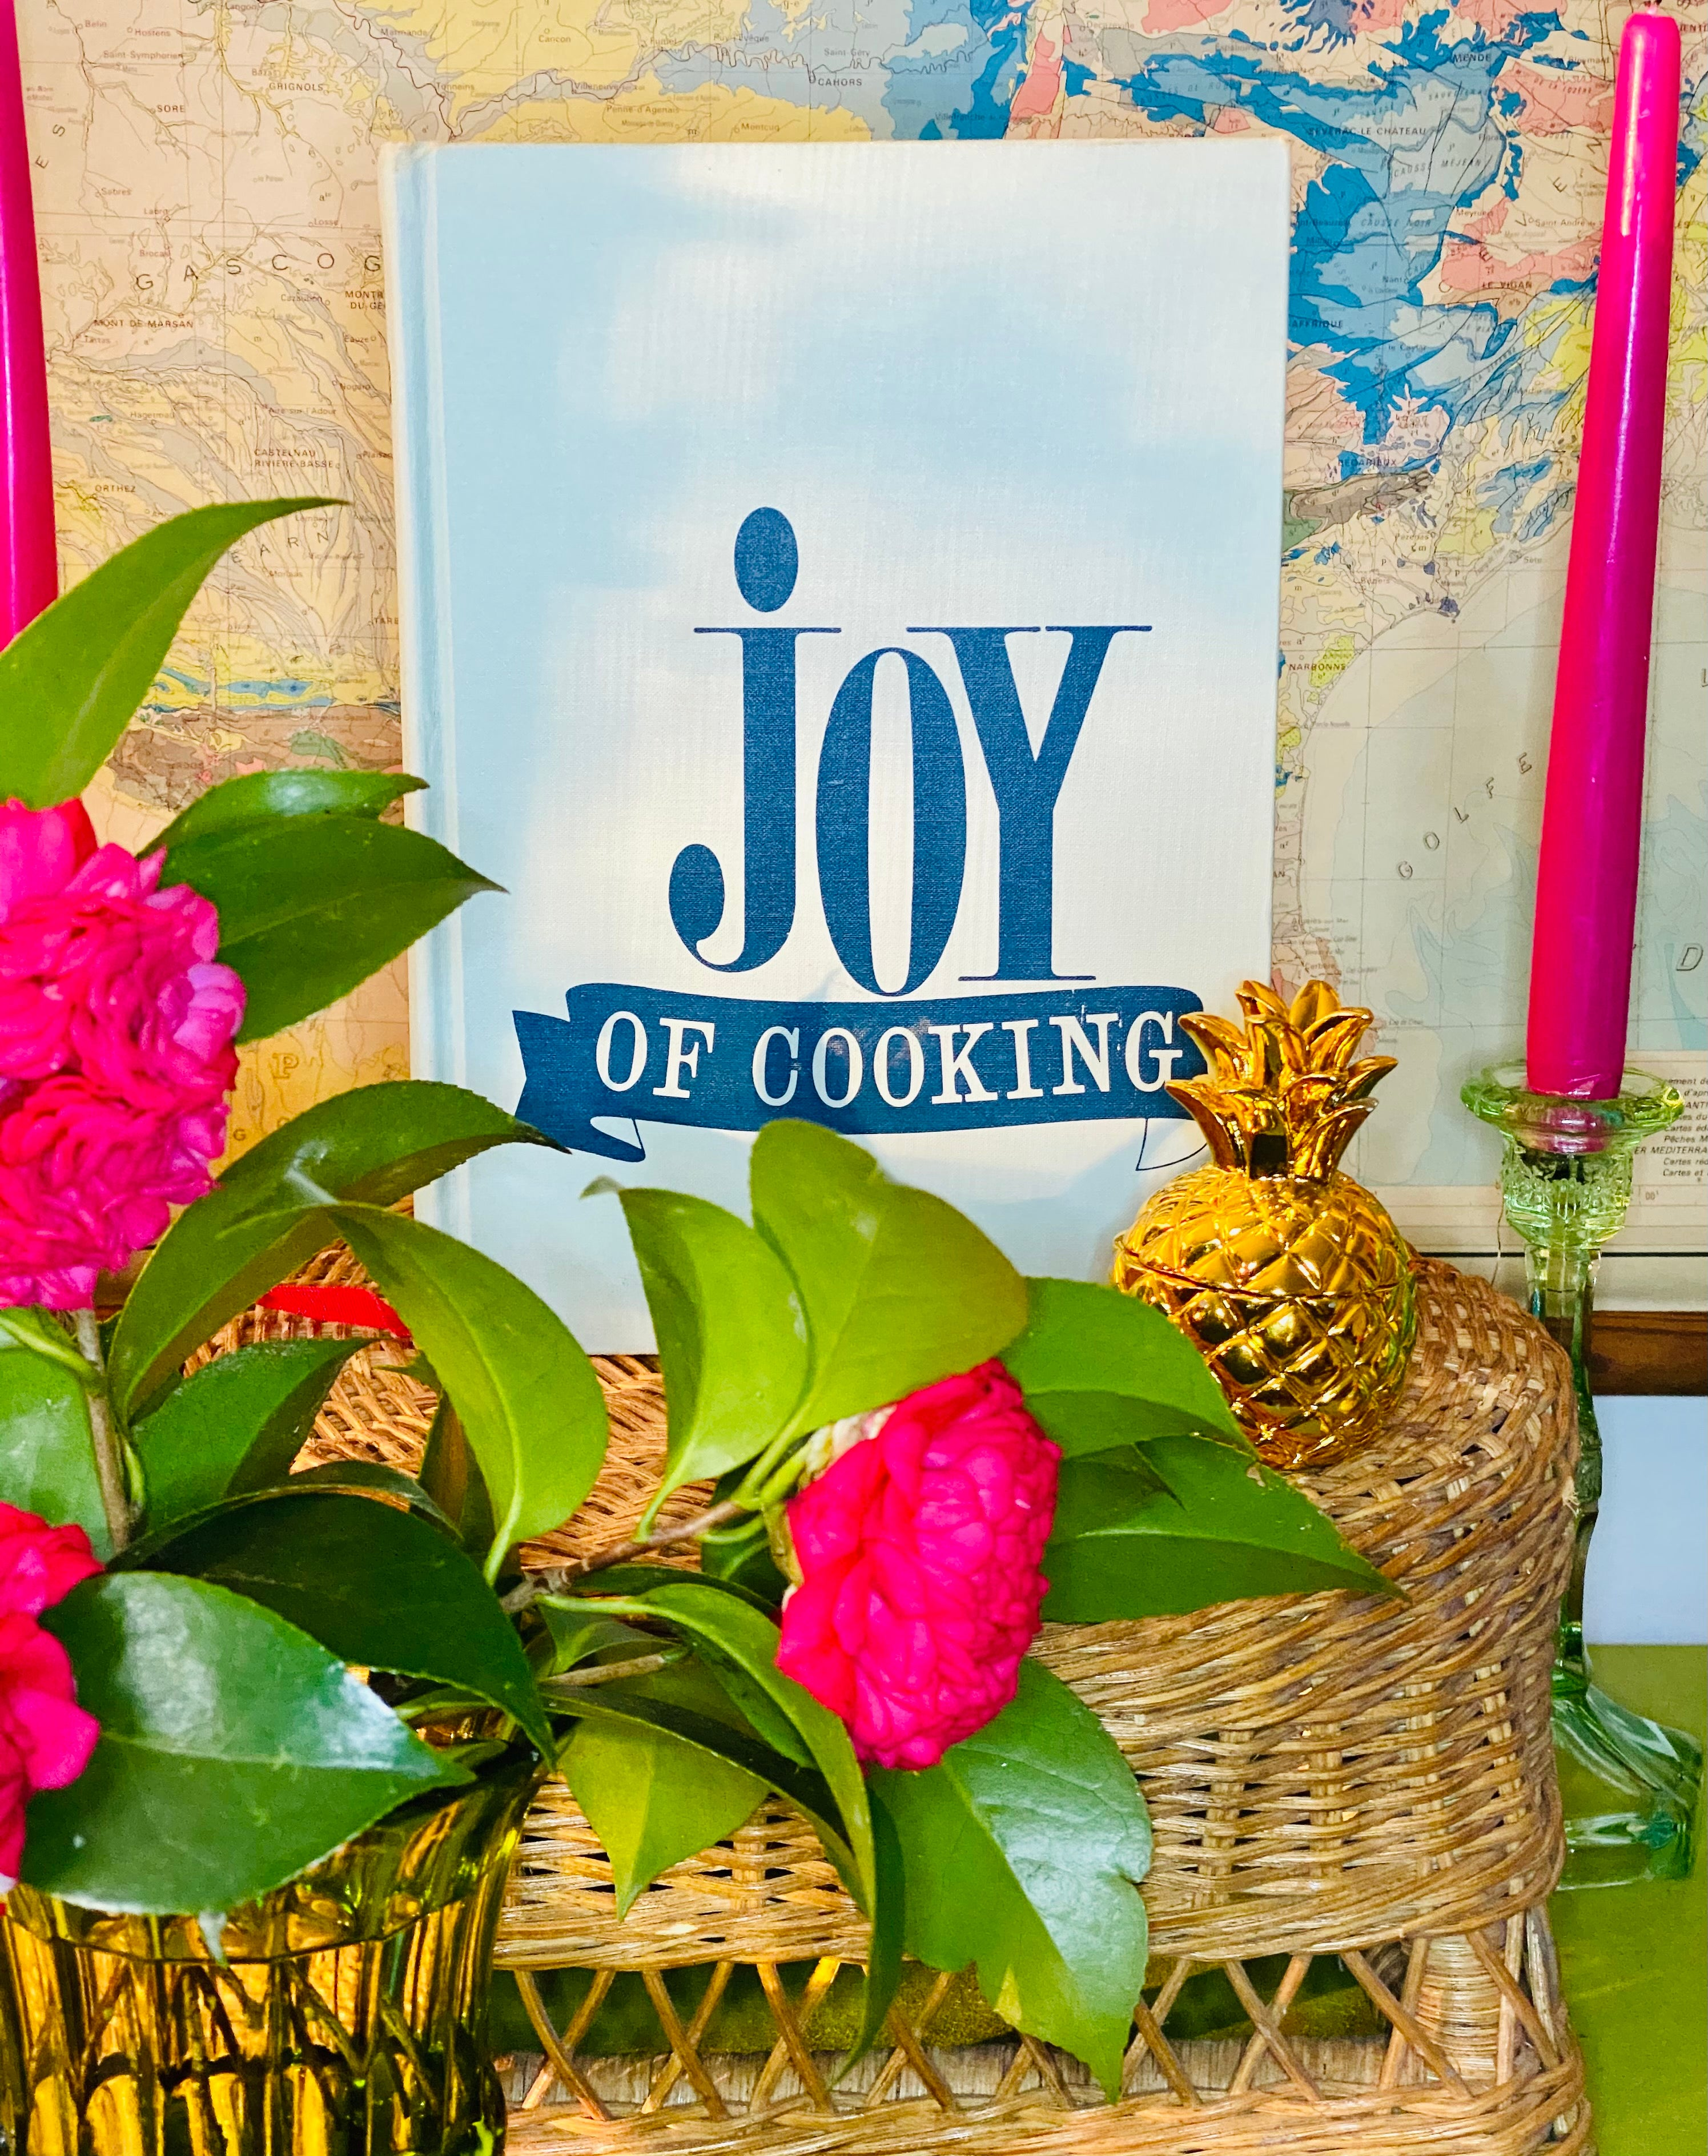 1963 Edition of Joy of Cooking